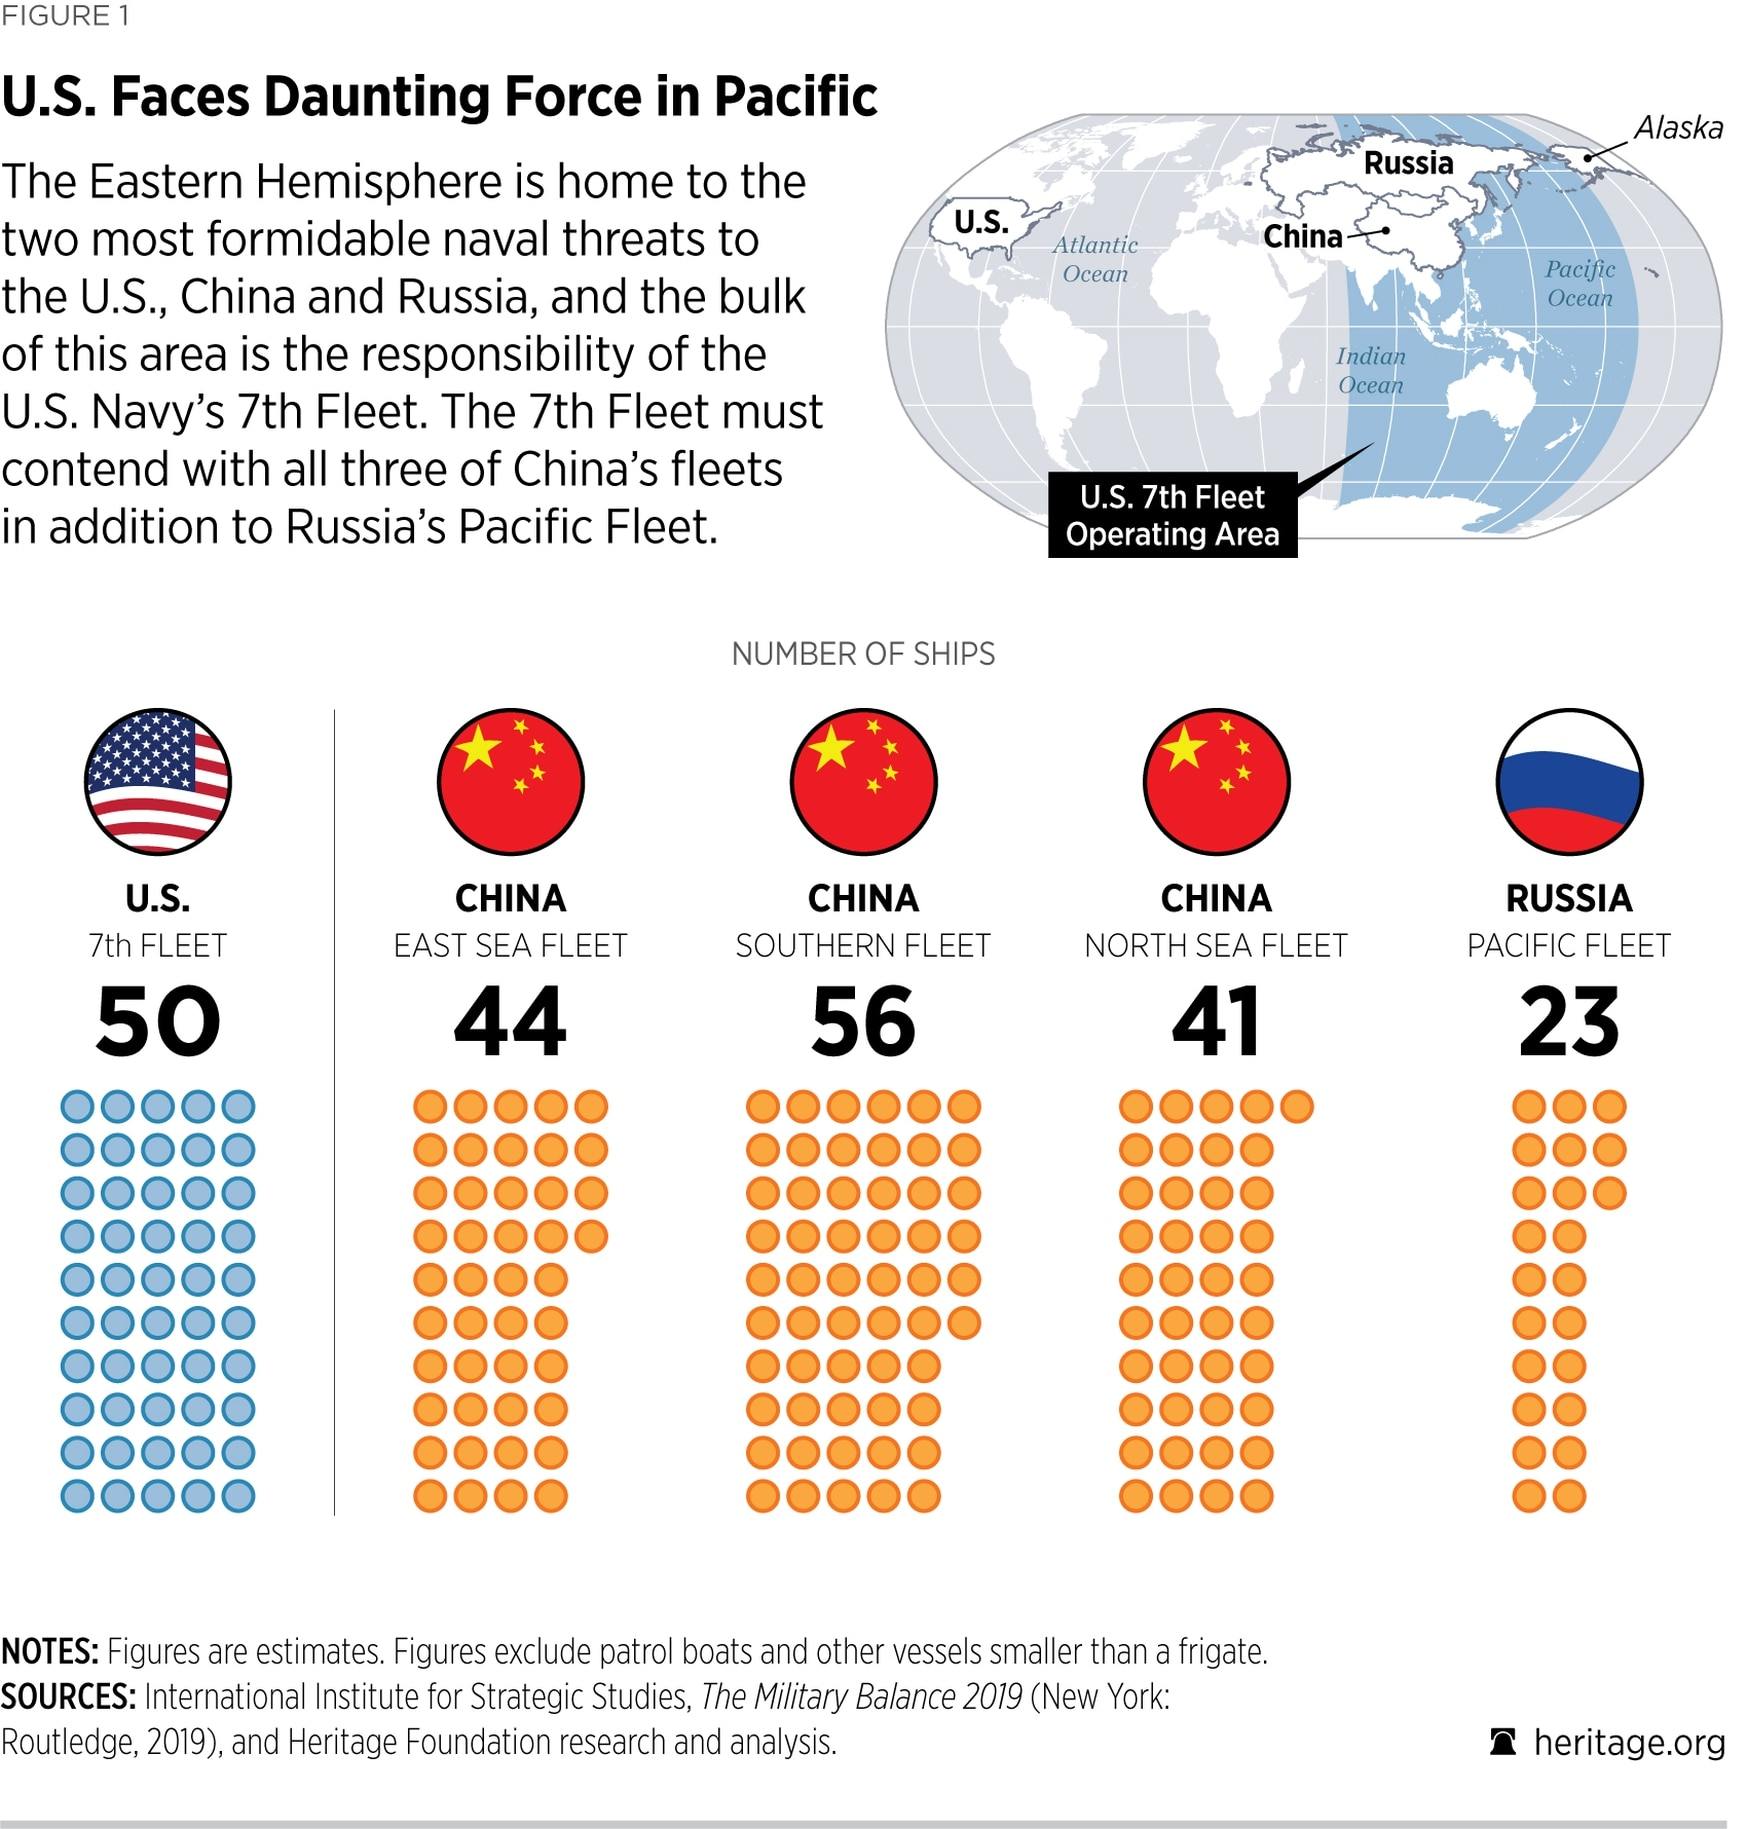 A comparison of naval power in the Pacific shows the U.S. is dramatically outnumbered. (Heritage Foundation)